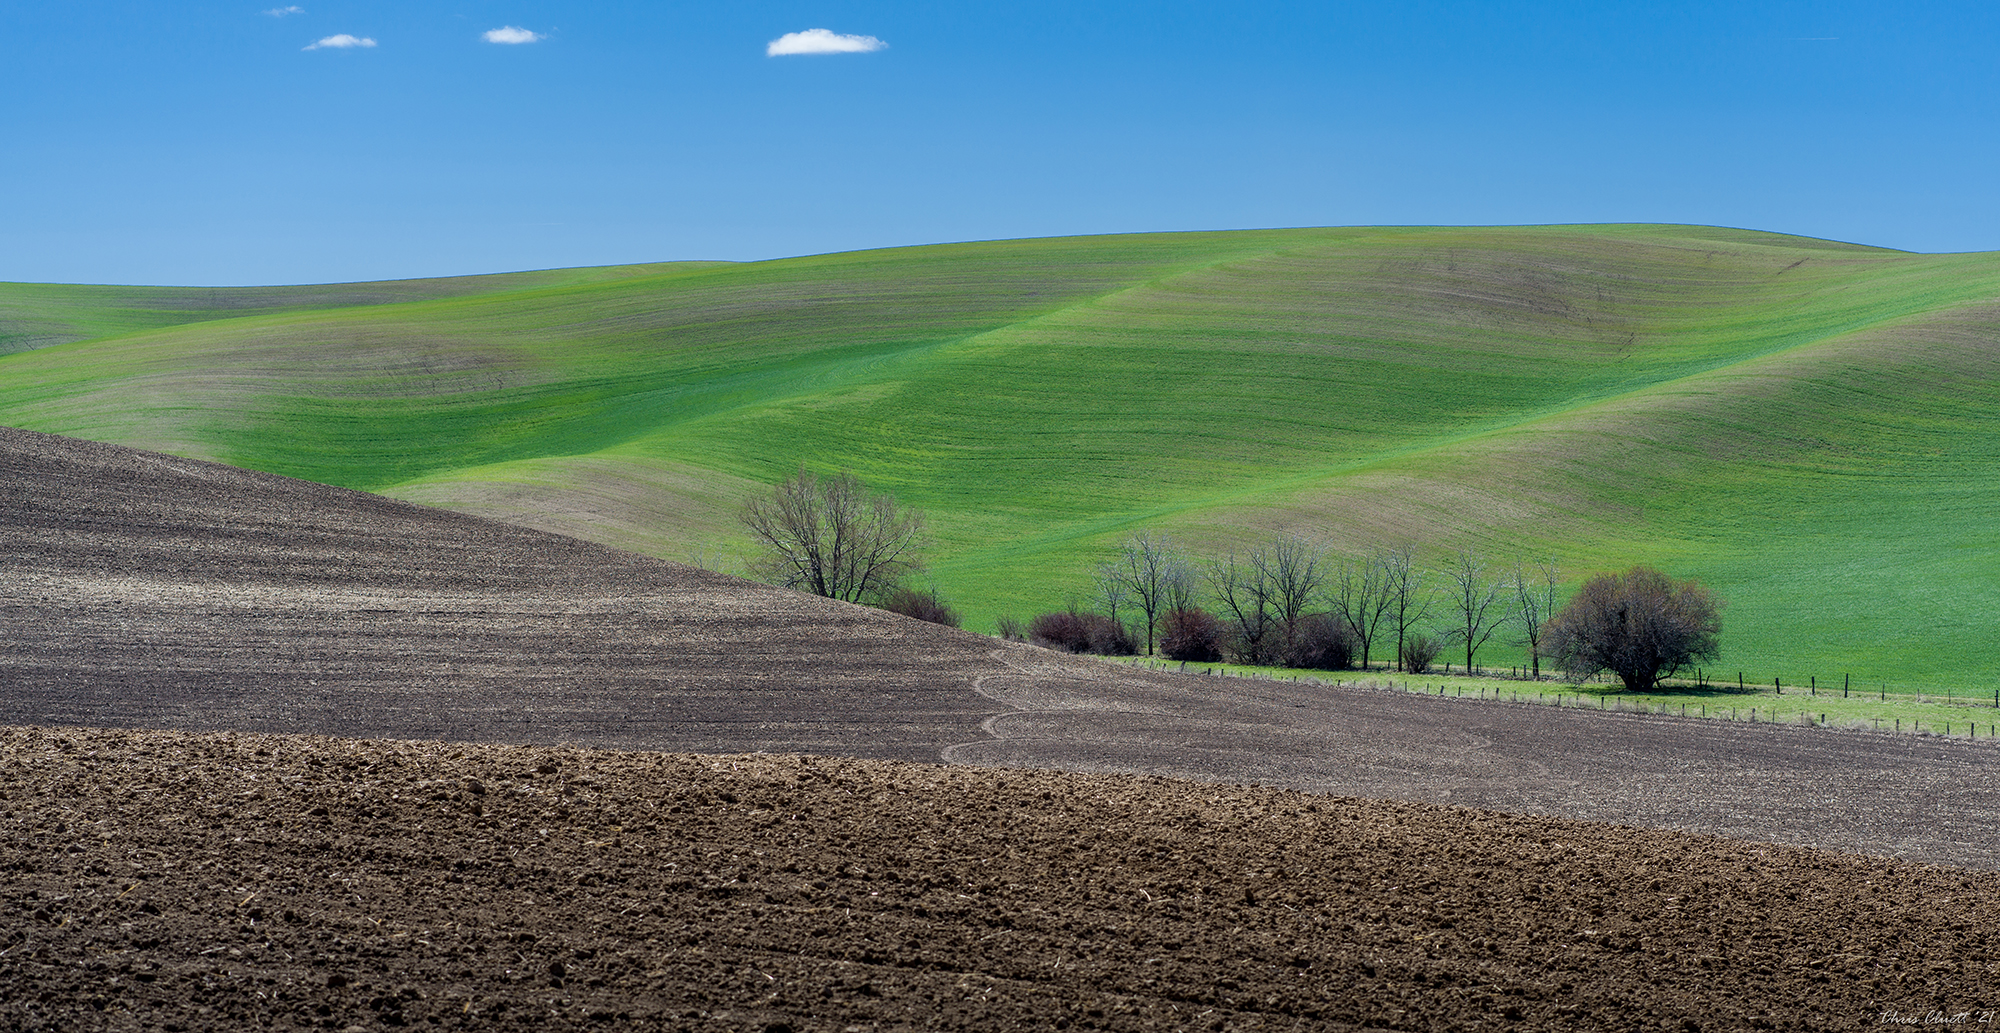 Soft colors just emerging from a monochrome winter dormancy; earth tones with patterning in the tilled soil; natural and manmade lines and shapes document the early spring Palouse landscape.